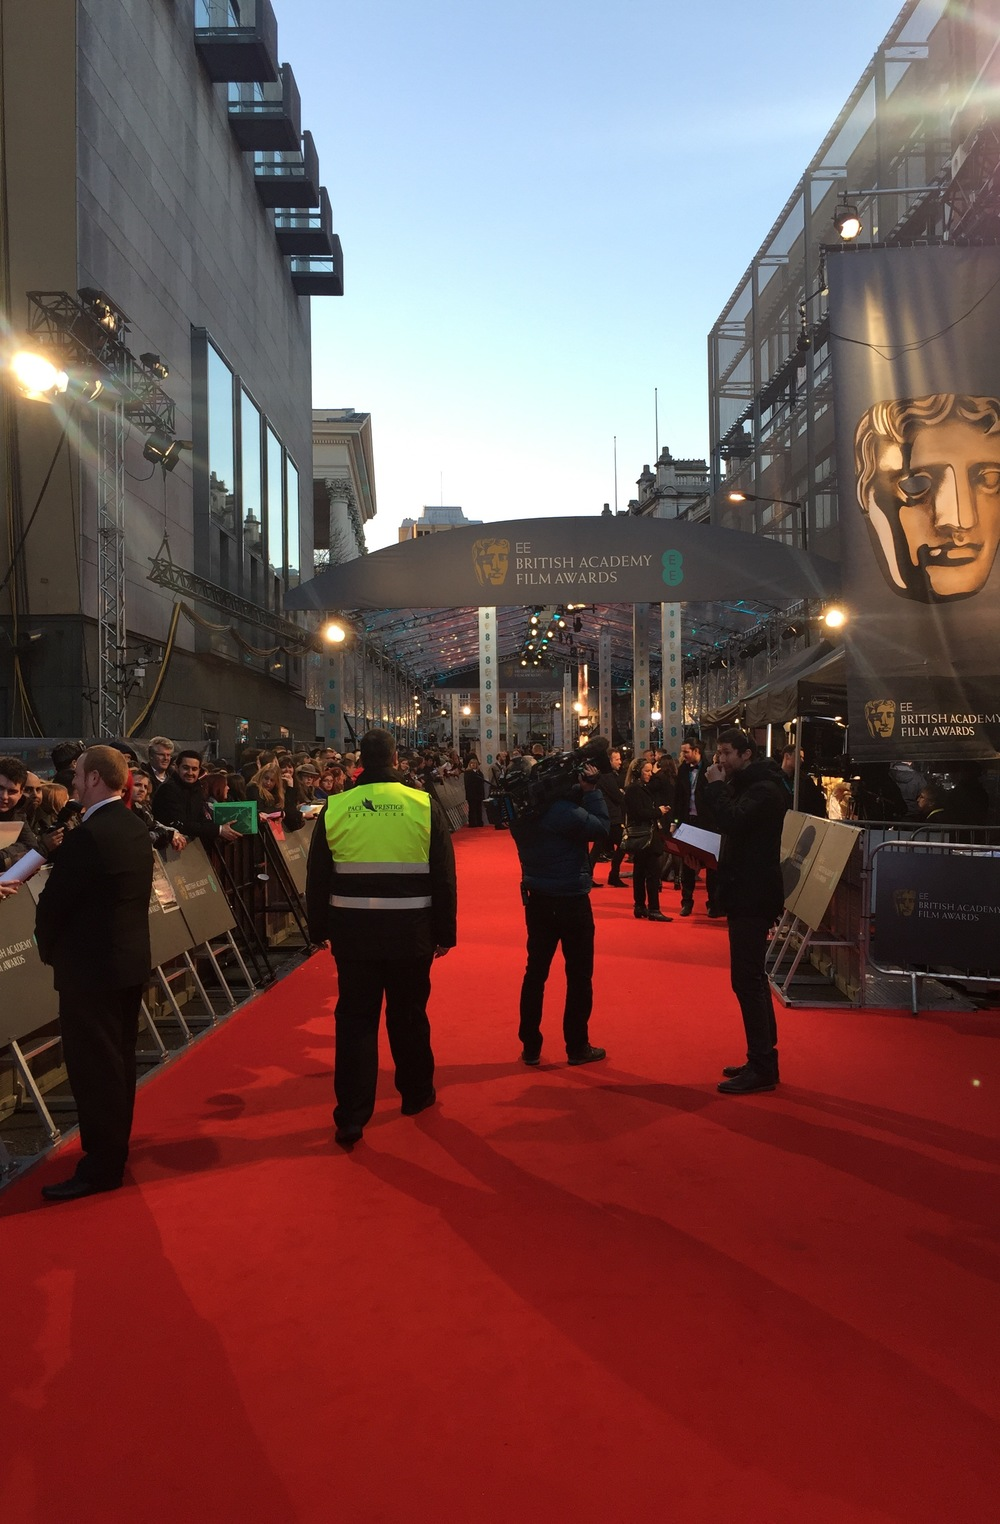 BAFTA Film Awards 2015